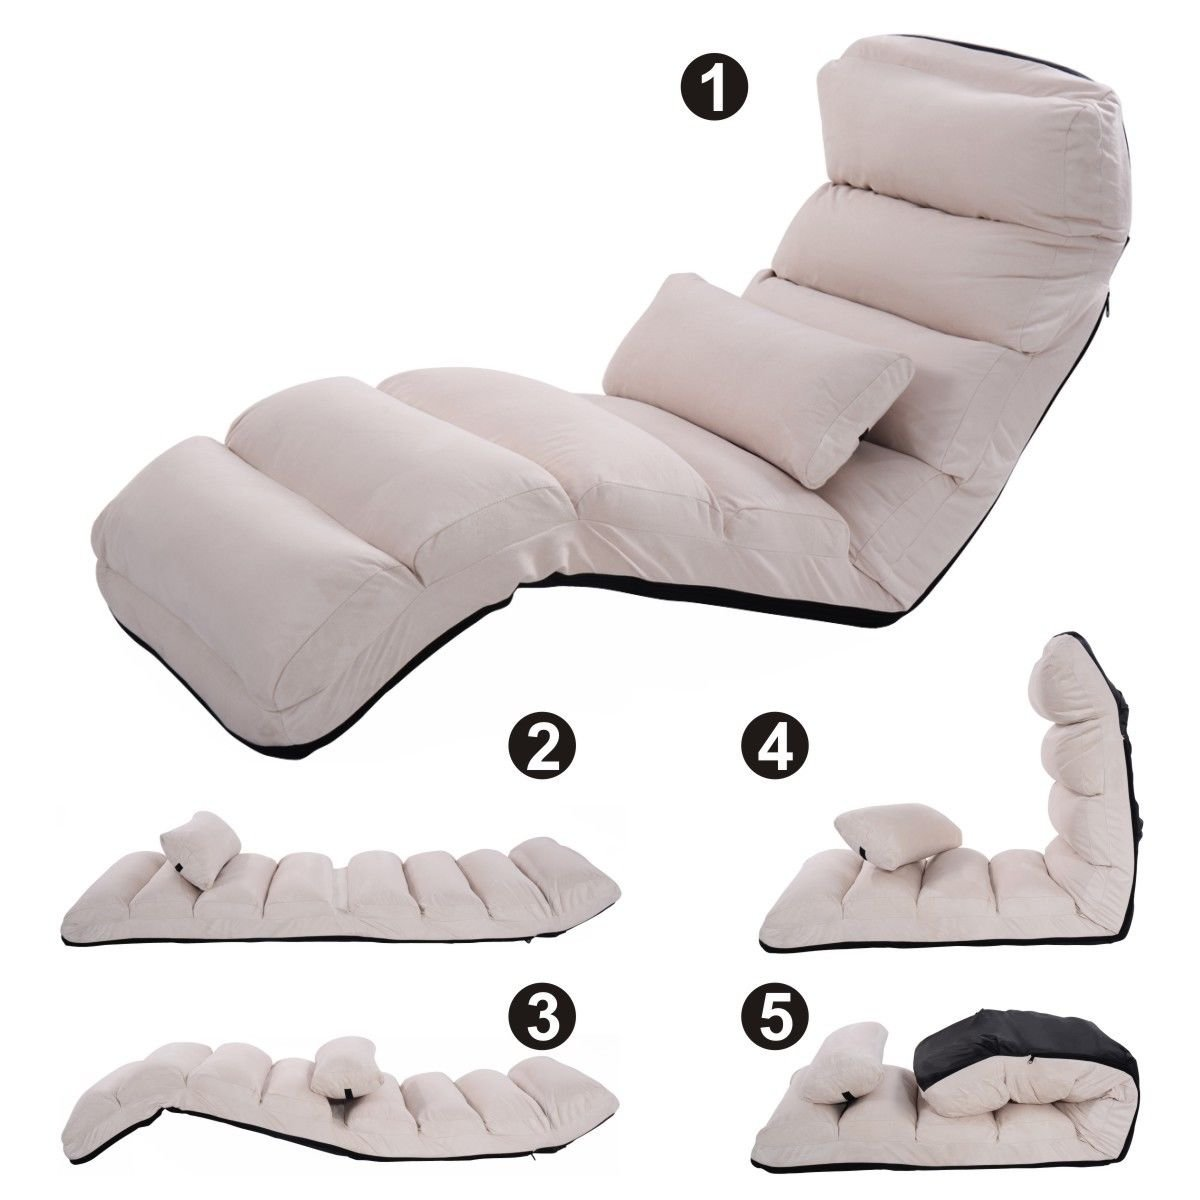 single chair sofa beds modern contemporary sectionals cheap find deals on get quotations beige new folding lazy stylish couch lounge w pillow